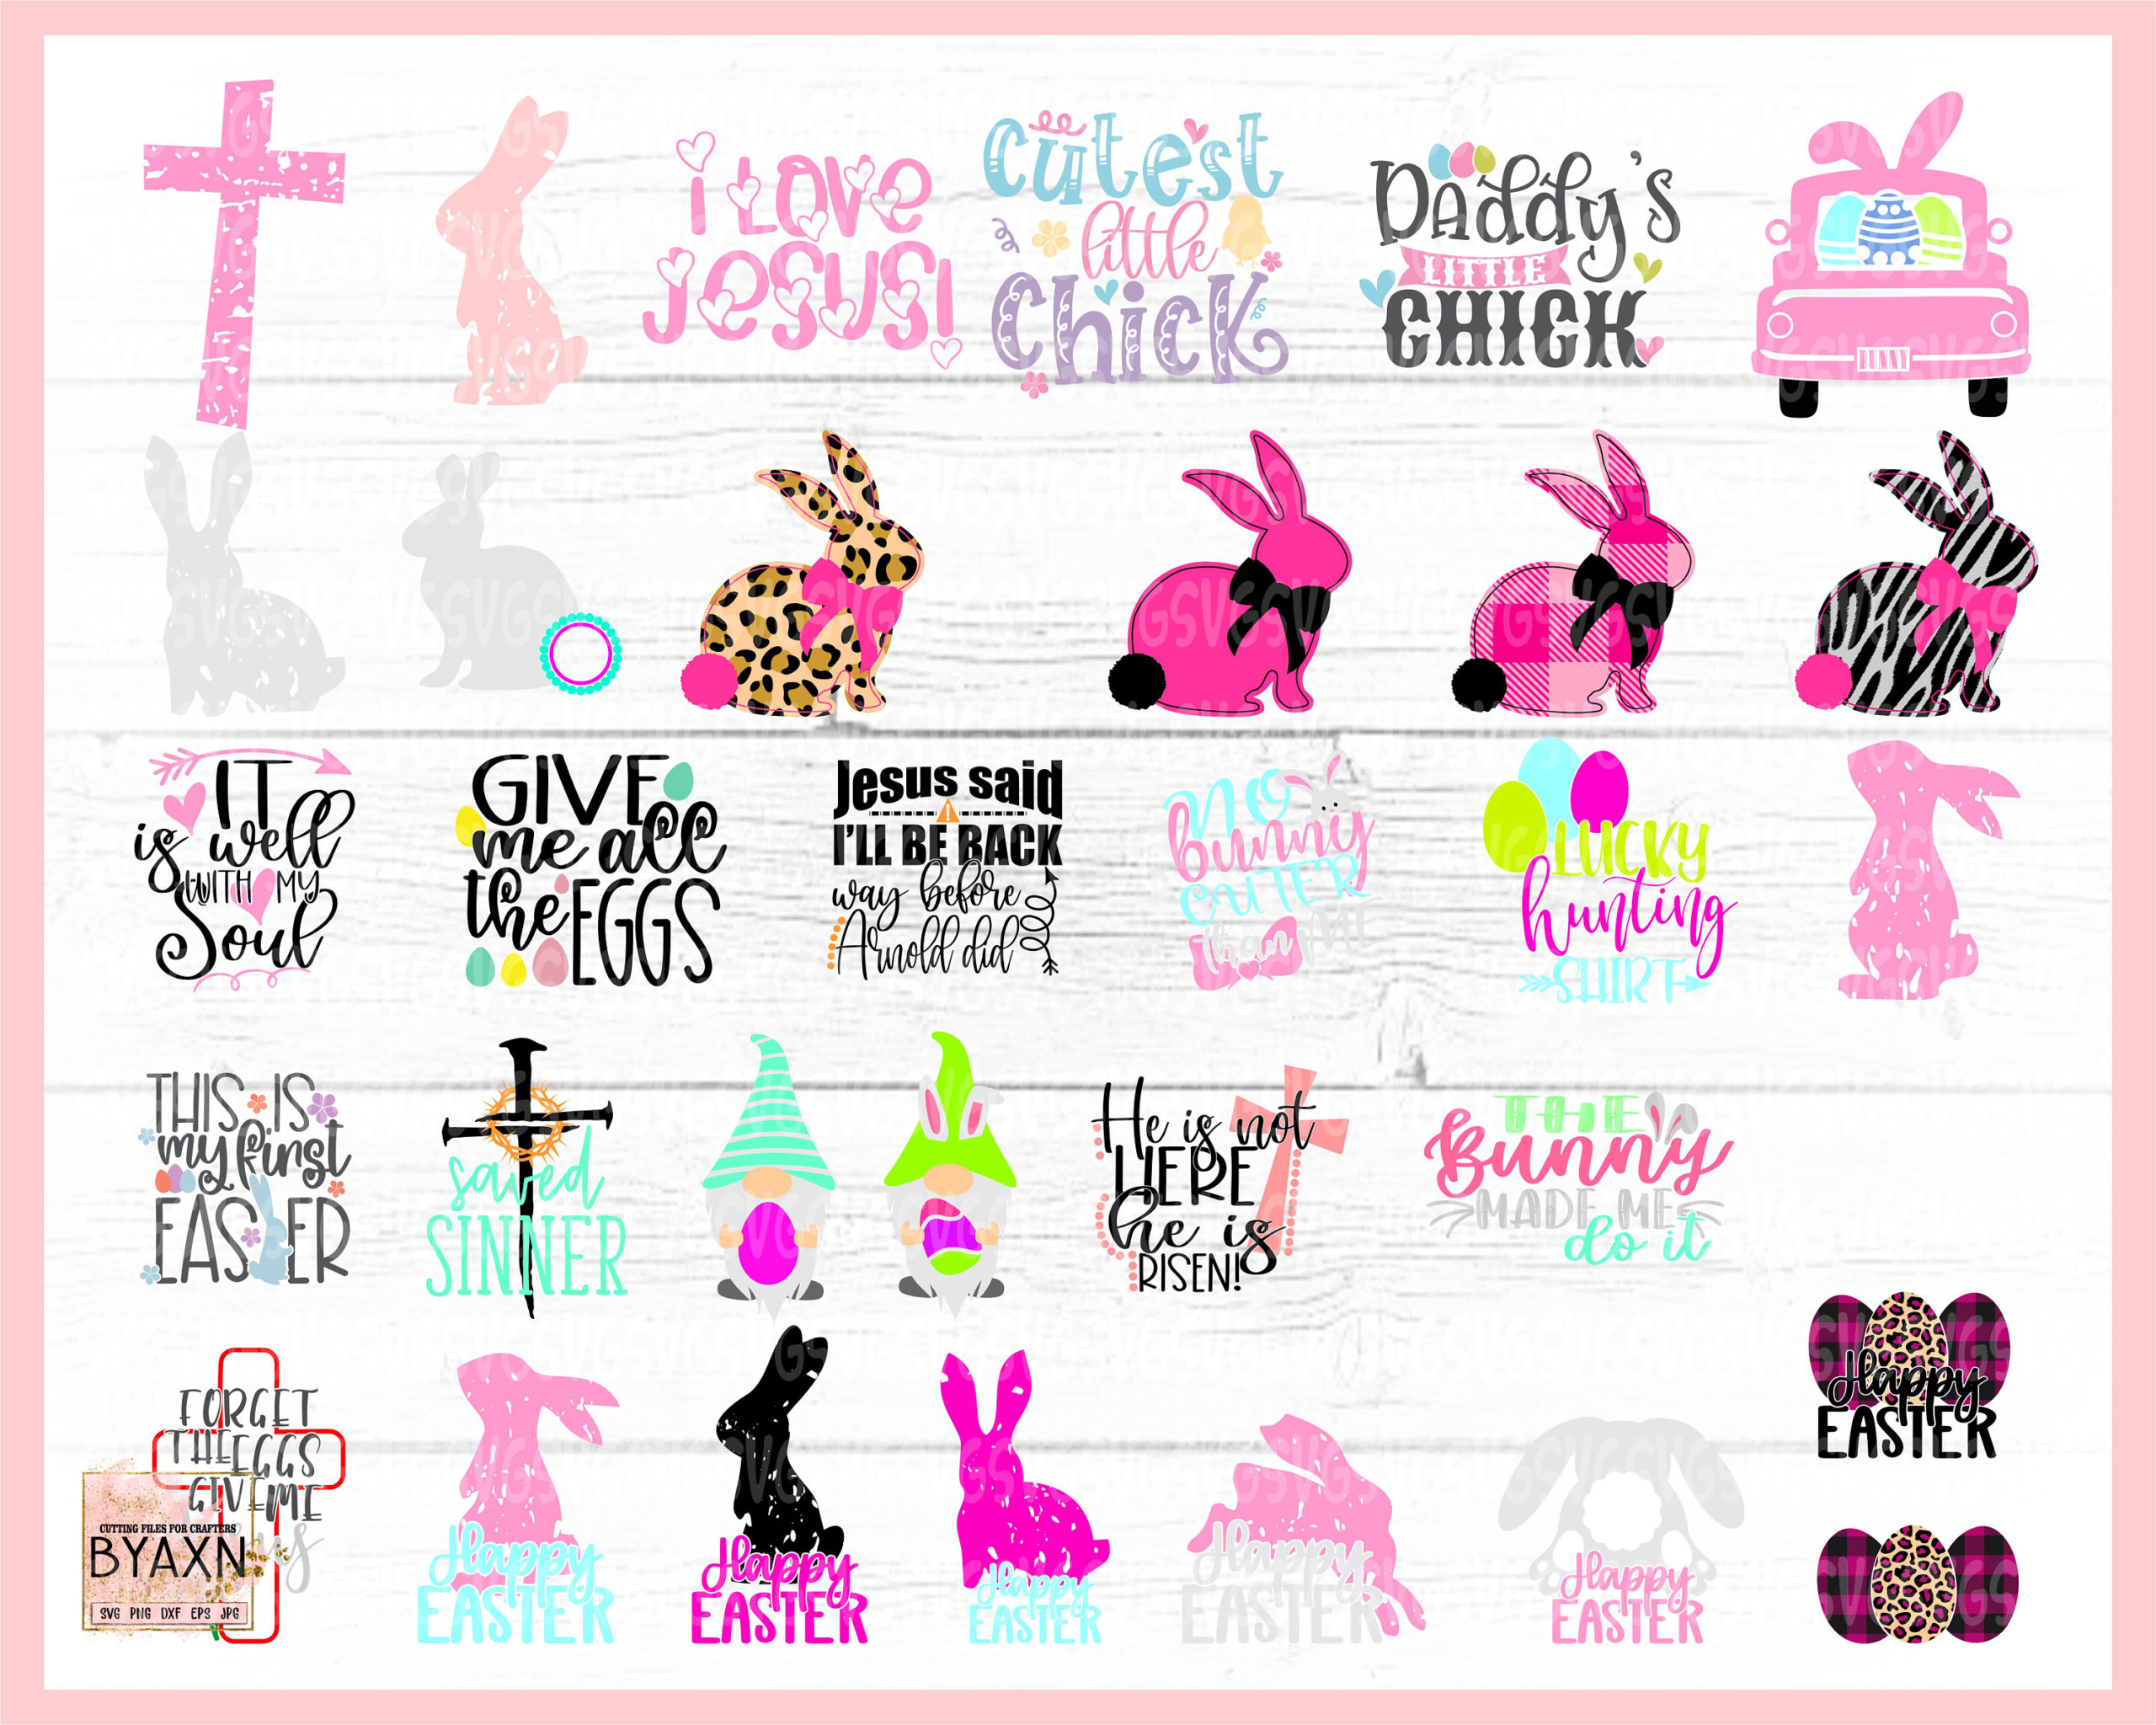 Easter-svg-easter-svg-bundle-easter-svg-bundle-easter-svg-easter-svg-designs-spring-cut-file-spring-bundle-easter-bundle-605148b7